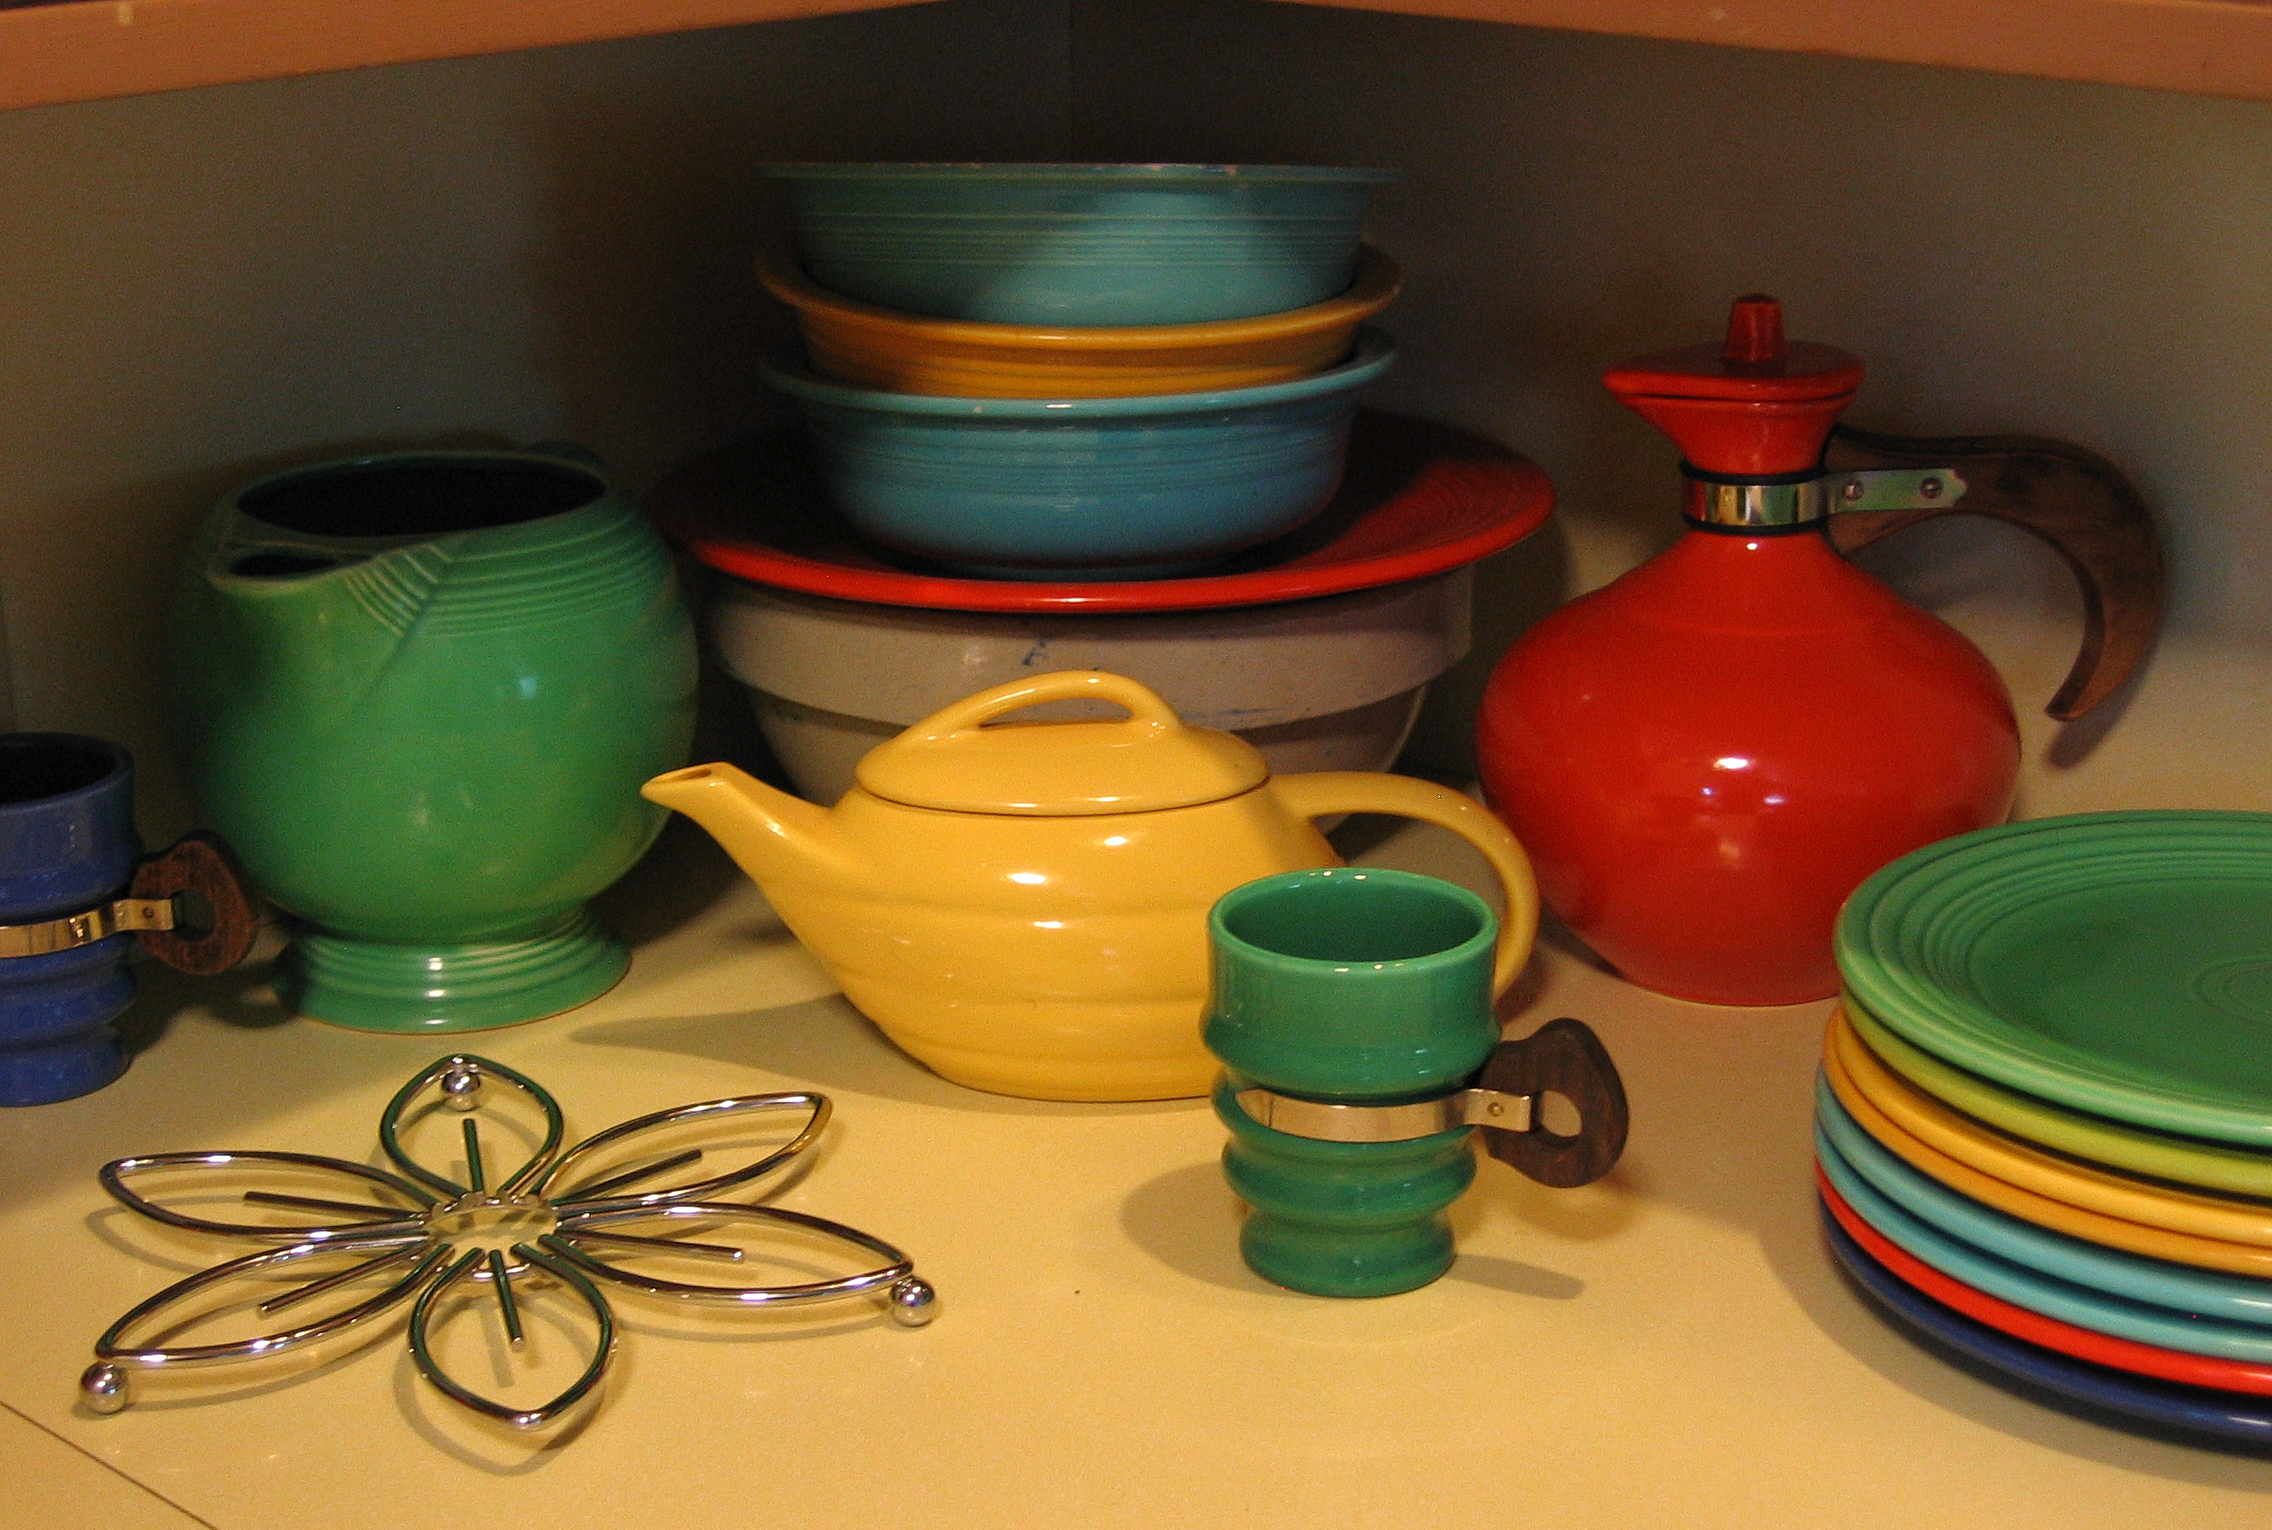 Awesome Collections Of Fiestaware For Dinnerware Ideas: Embracing Mid Century Modern Style Of Fiestaware For Dinnerware Ideas